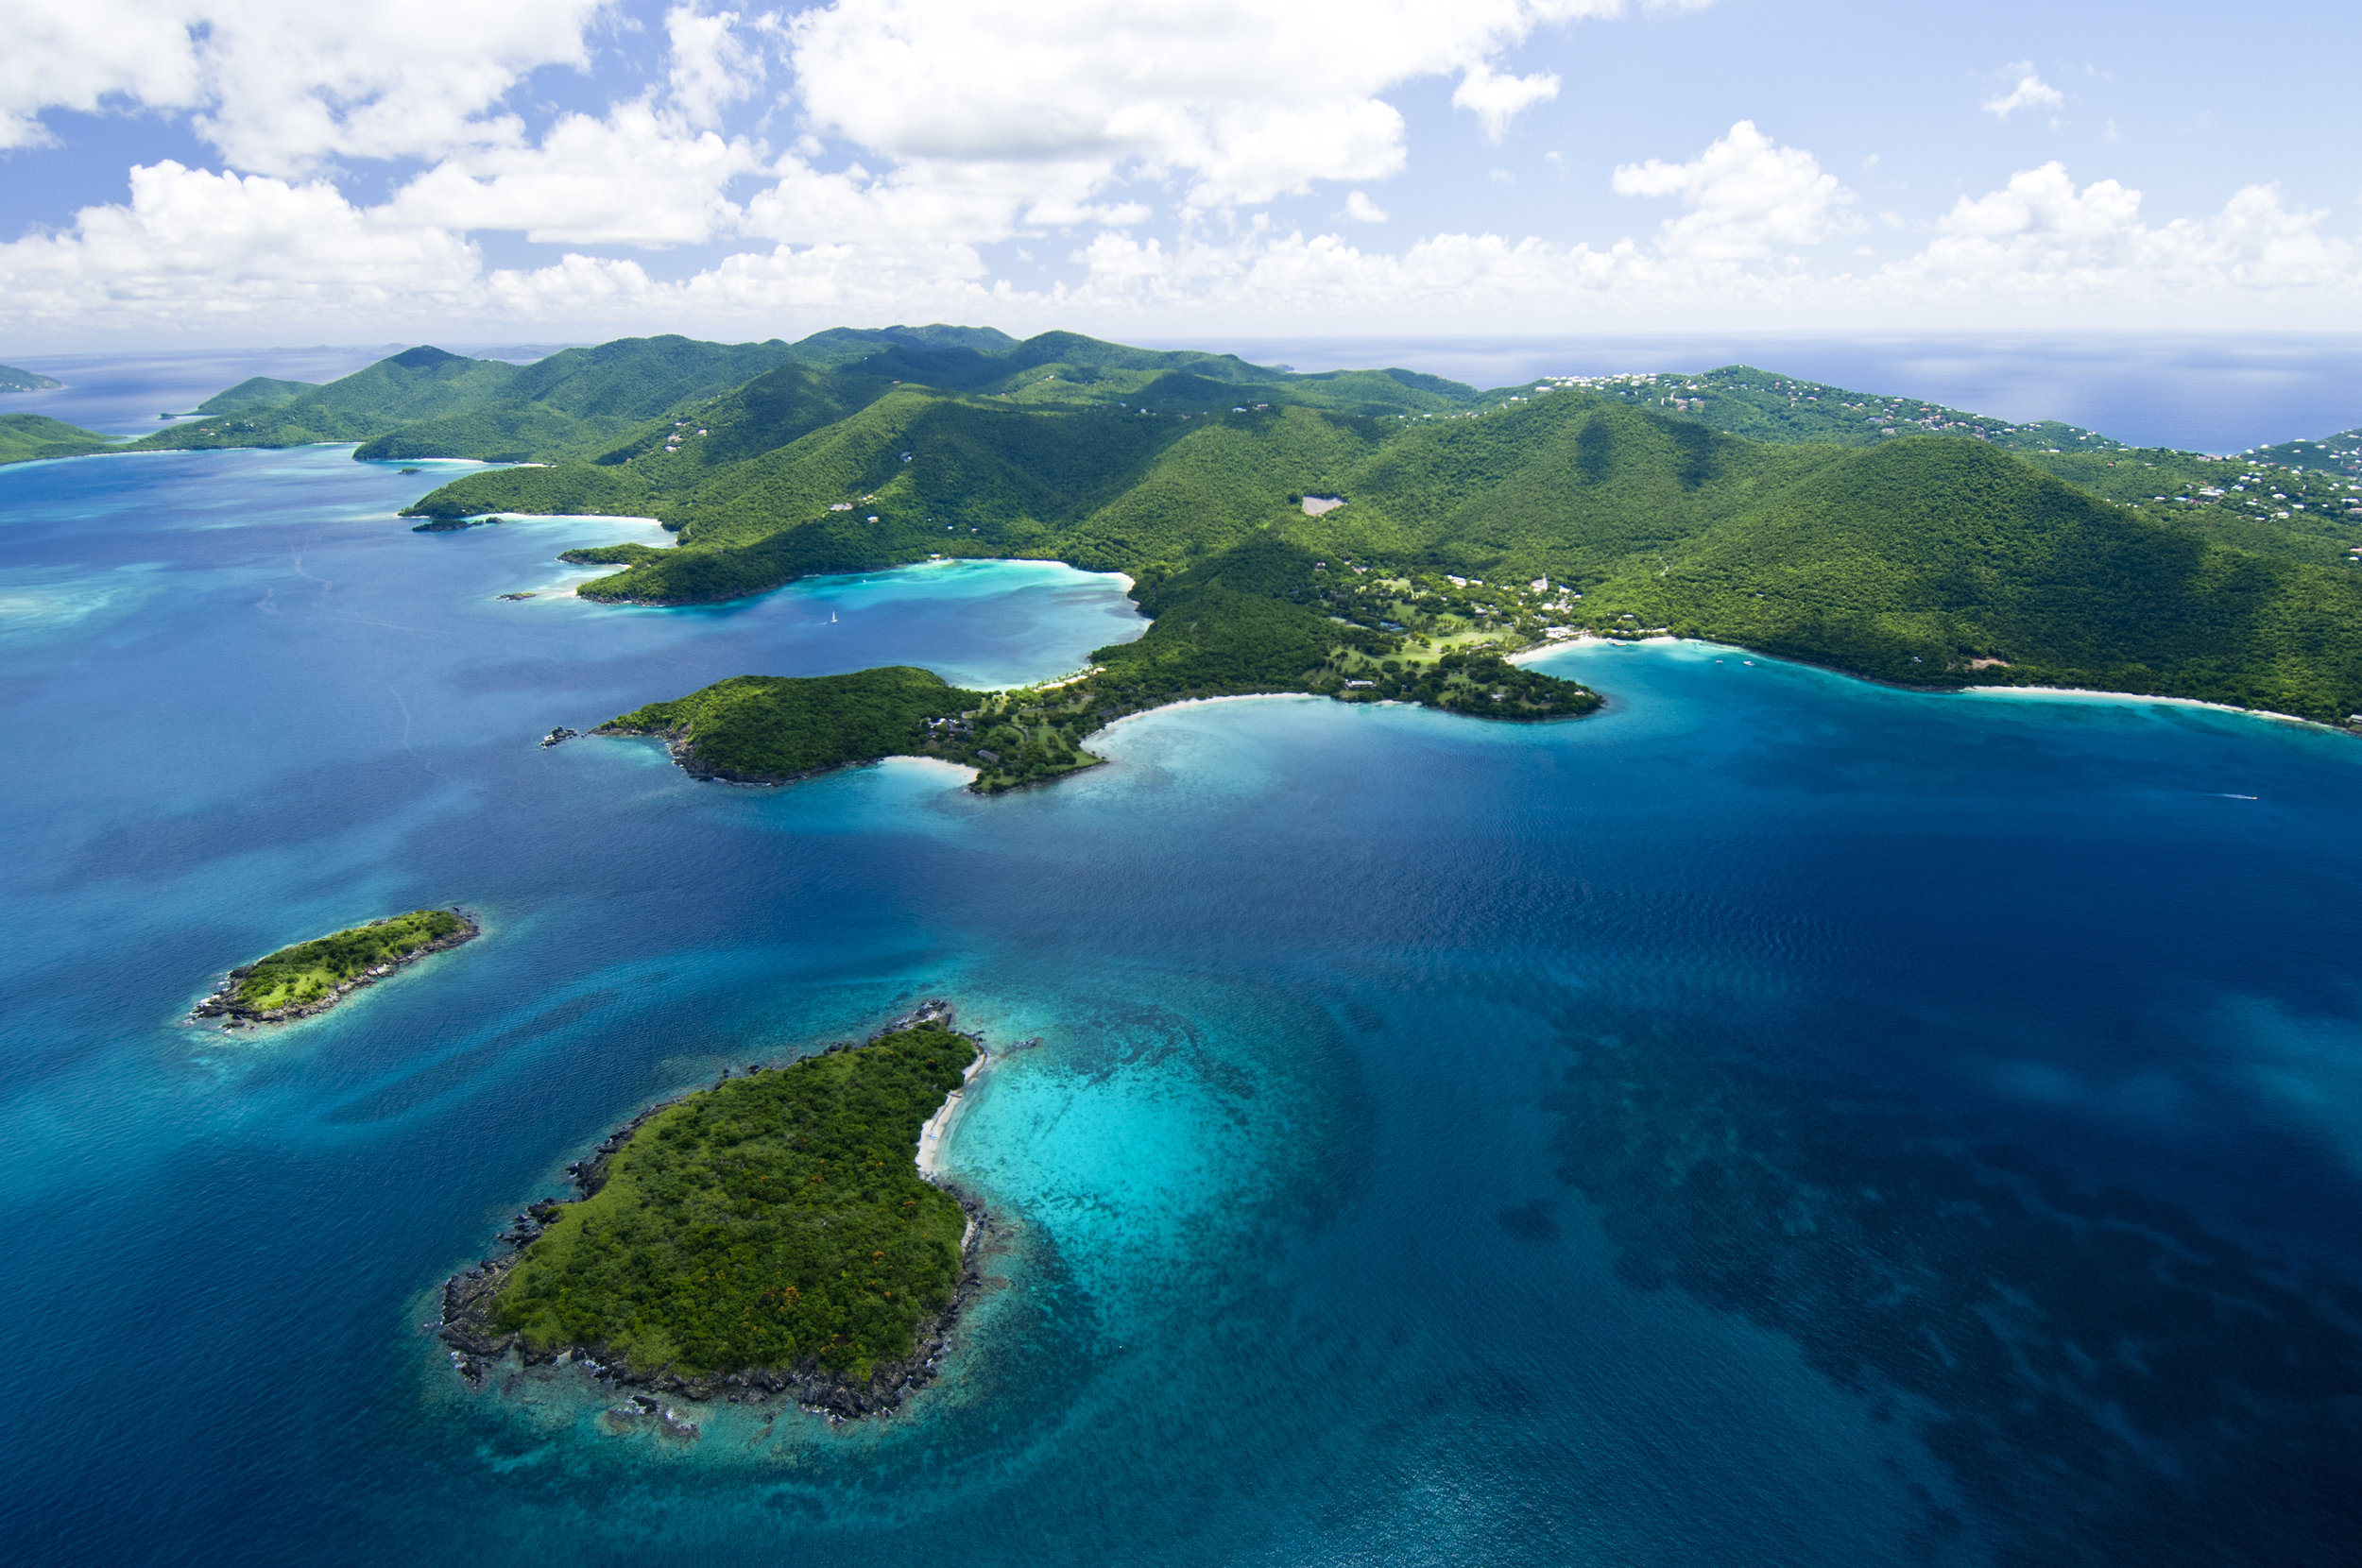 Cruise along the breathtaking shores of St John's National Park. Enjoy the beautiful north shore beaches in contrast to her quieter south side's dramatic rocky shoreline. Snorkel world class reefs. Choose from a variety of lunch options. No Customs and Immigration fees or lines